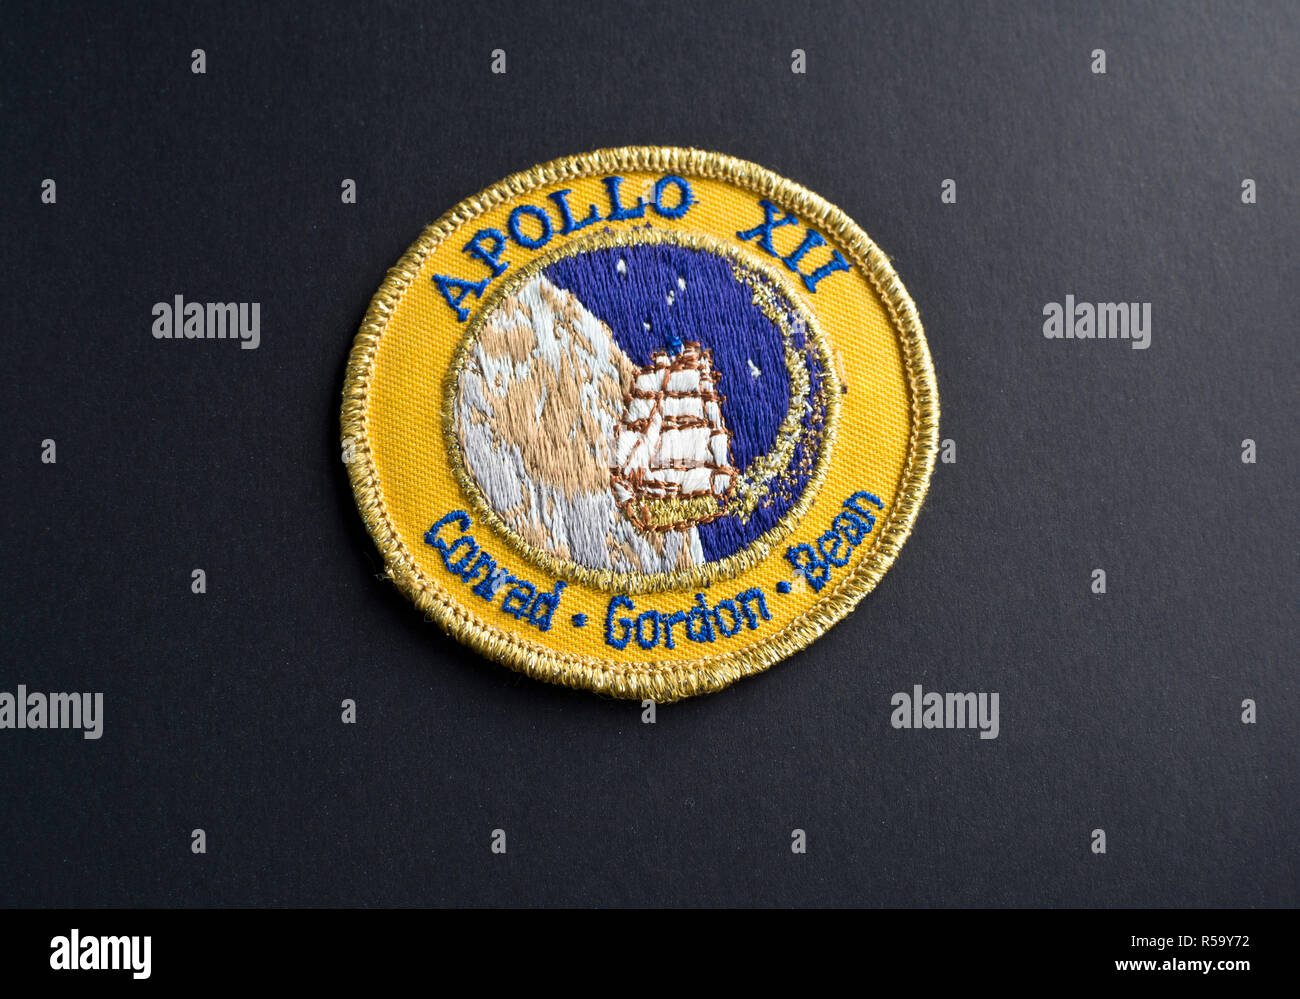 NASA Apollo 12 mission patch.  Embroidered mission patch. - Stock Image